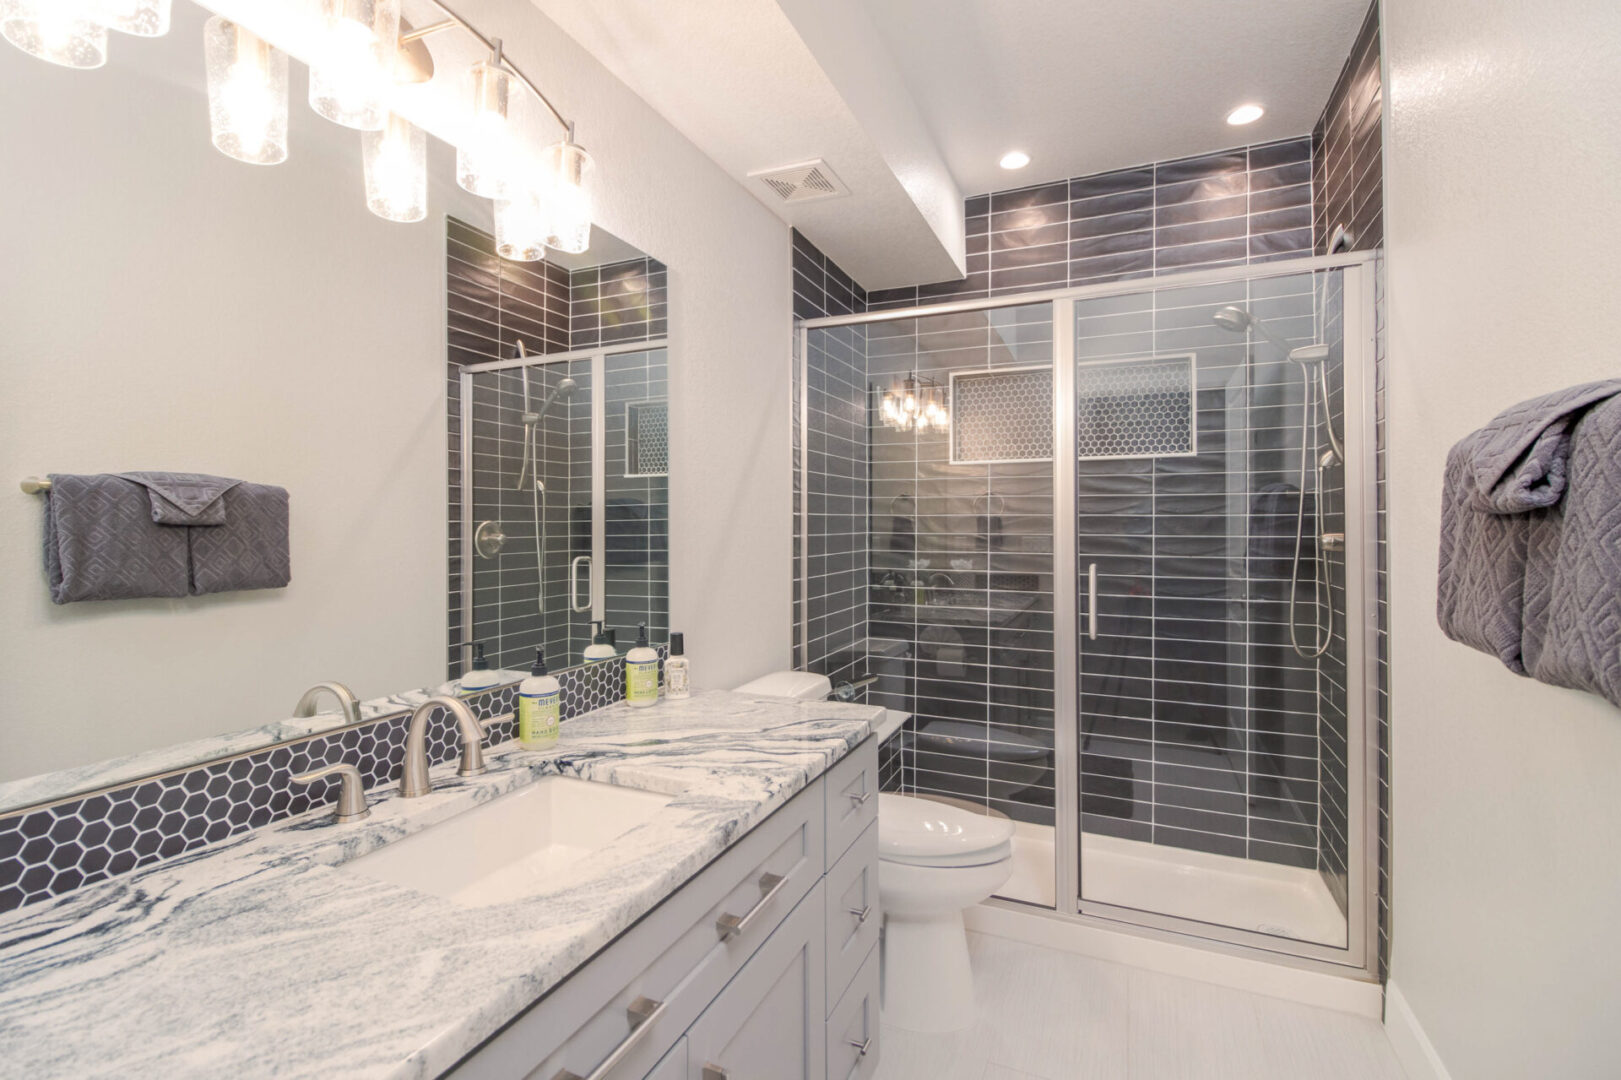 bathroom with marble sink and shower enclosure